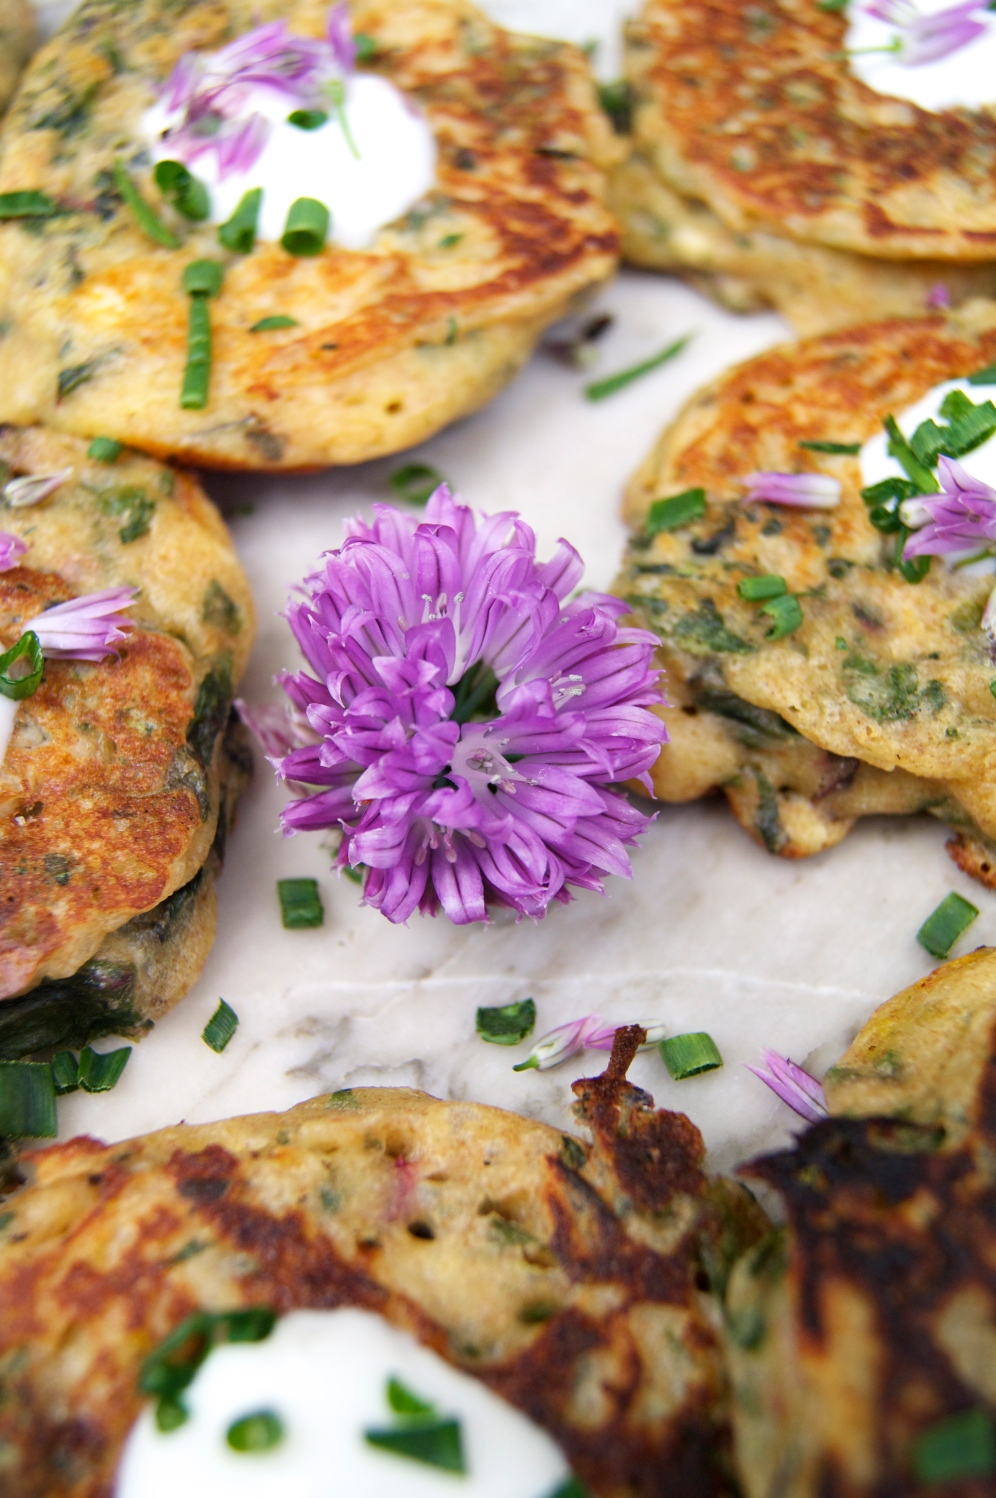 chard & saffron cakes with chive blossoms